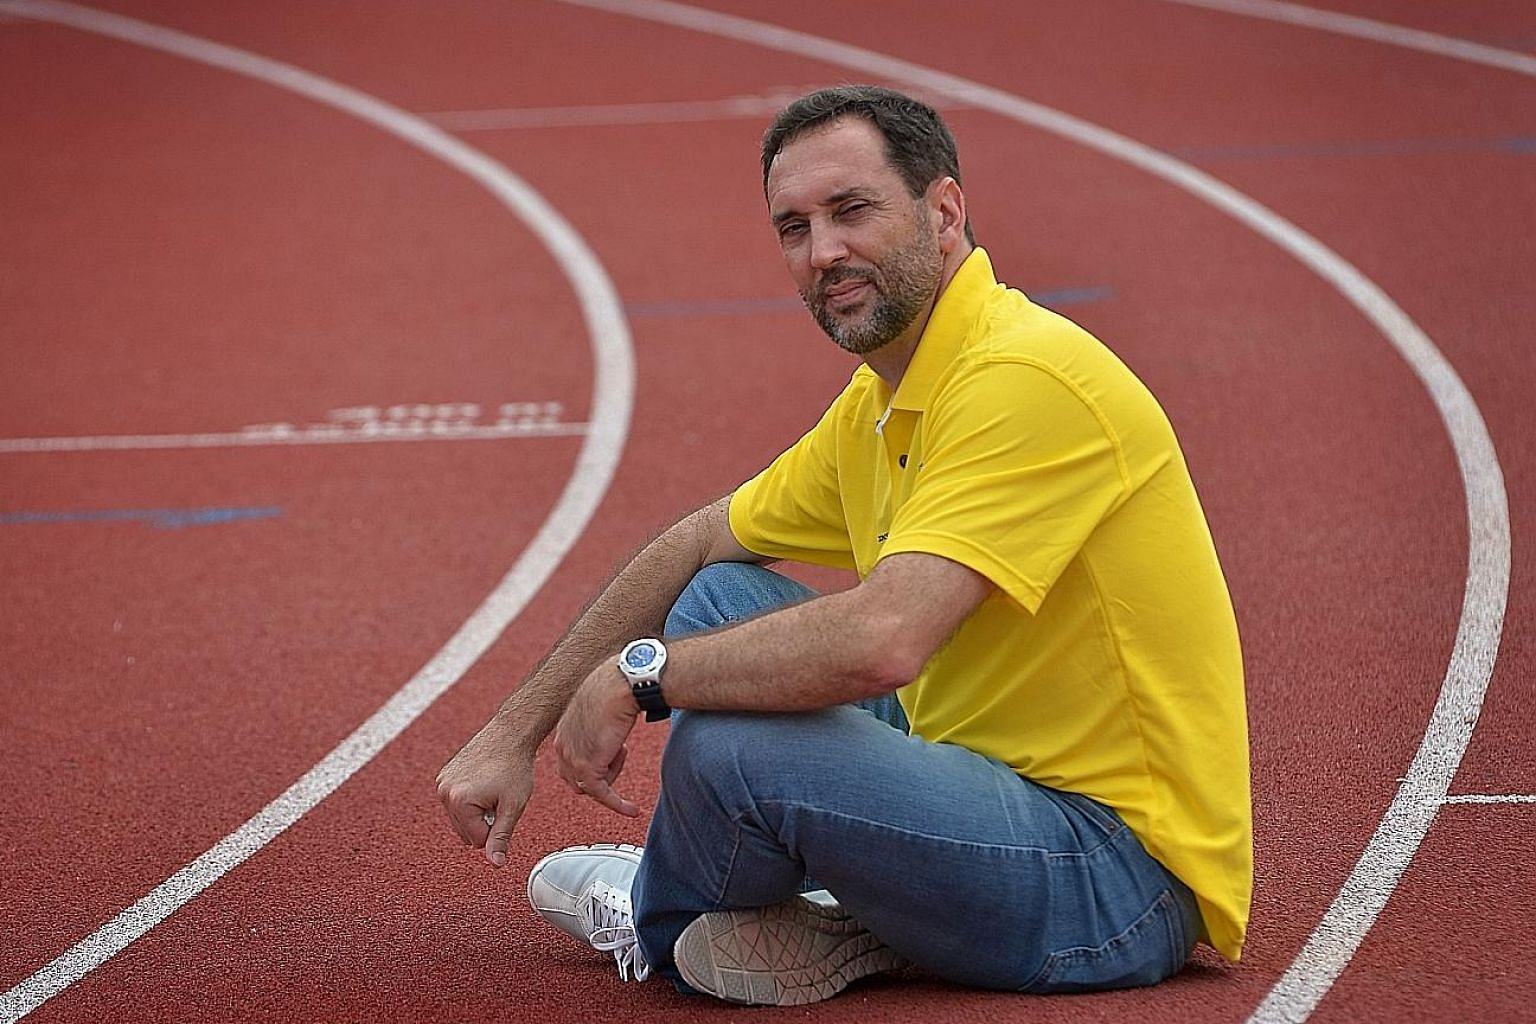 Former Portuguese sprinter Luis Cunha, 51, will be the new principal of the ActiveSG Athletics Club. But Singapore Athletics will not bar athletes who wish to continue training under him.